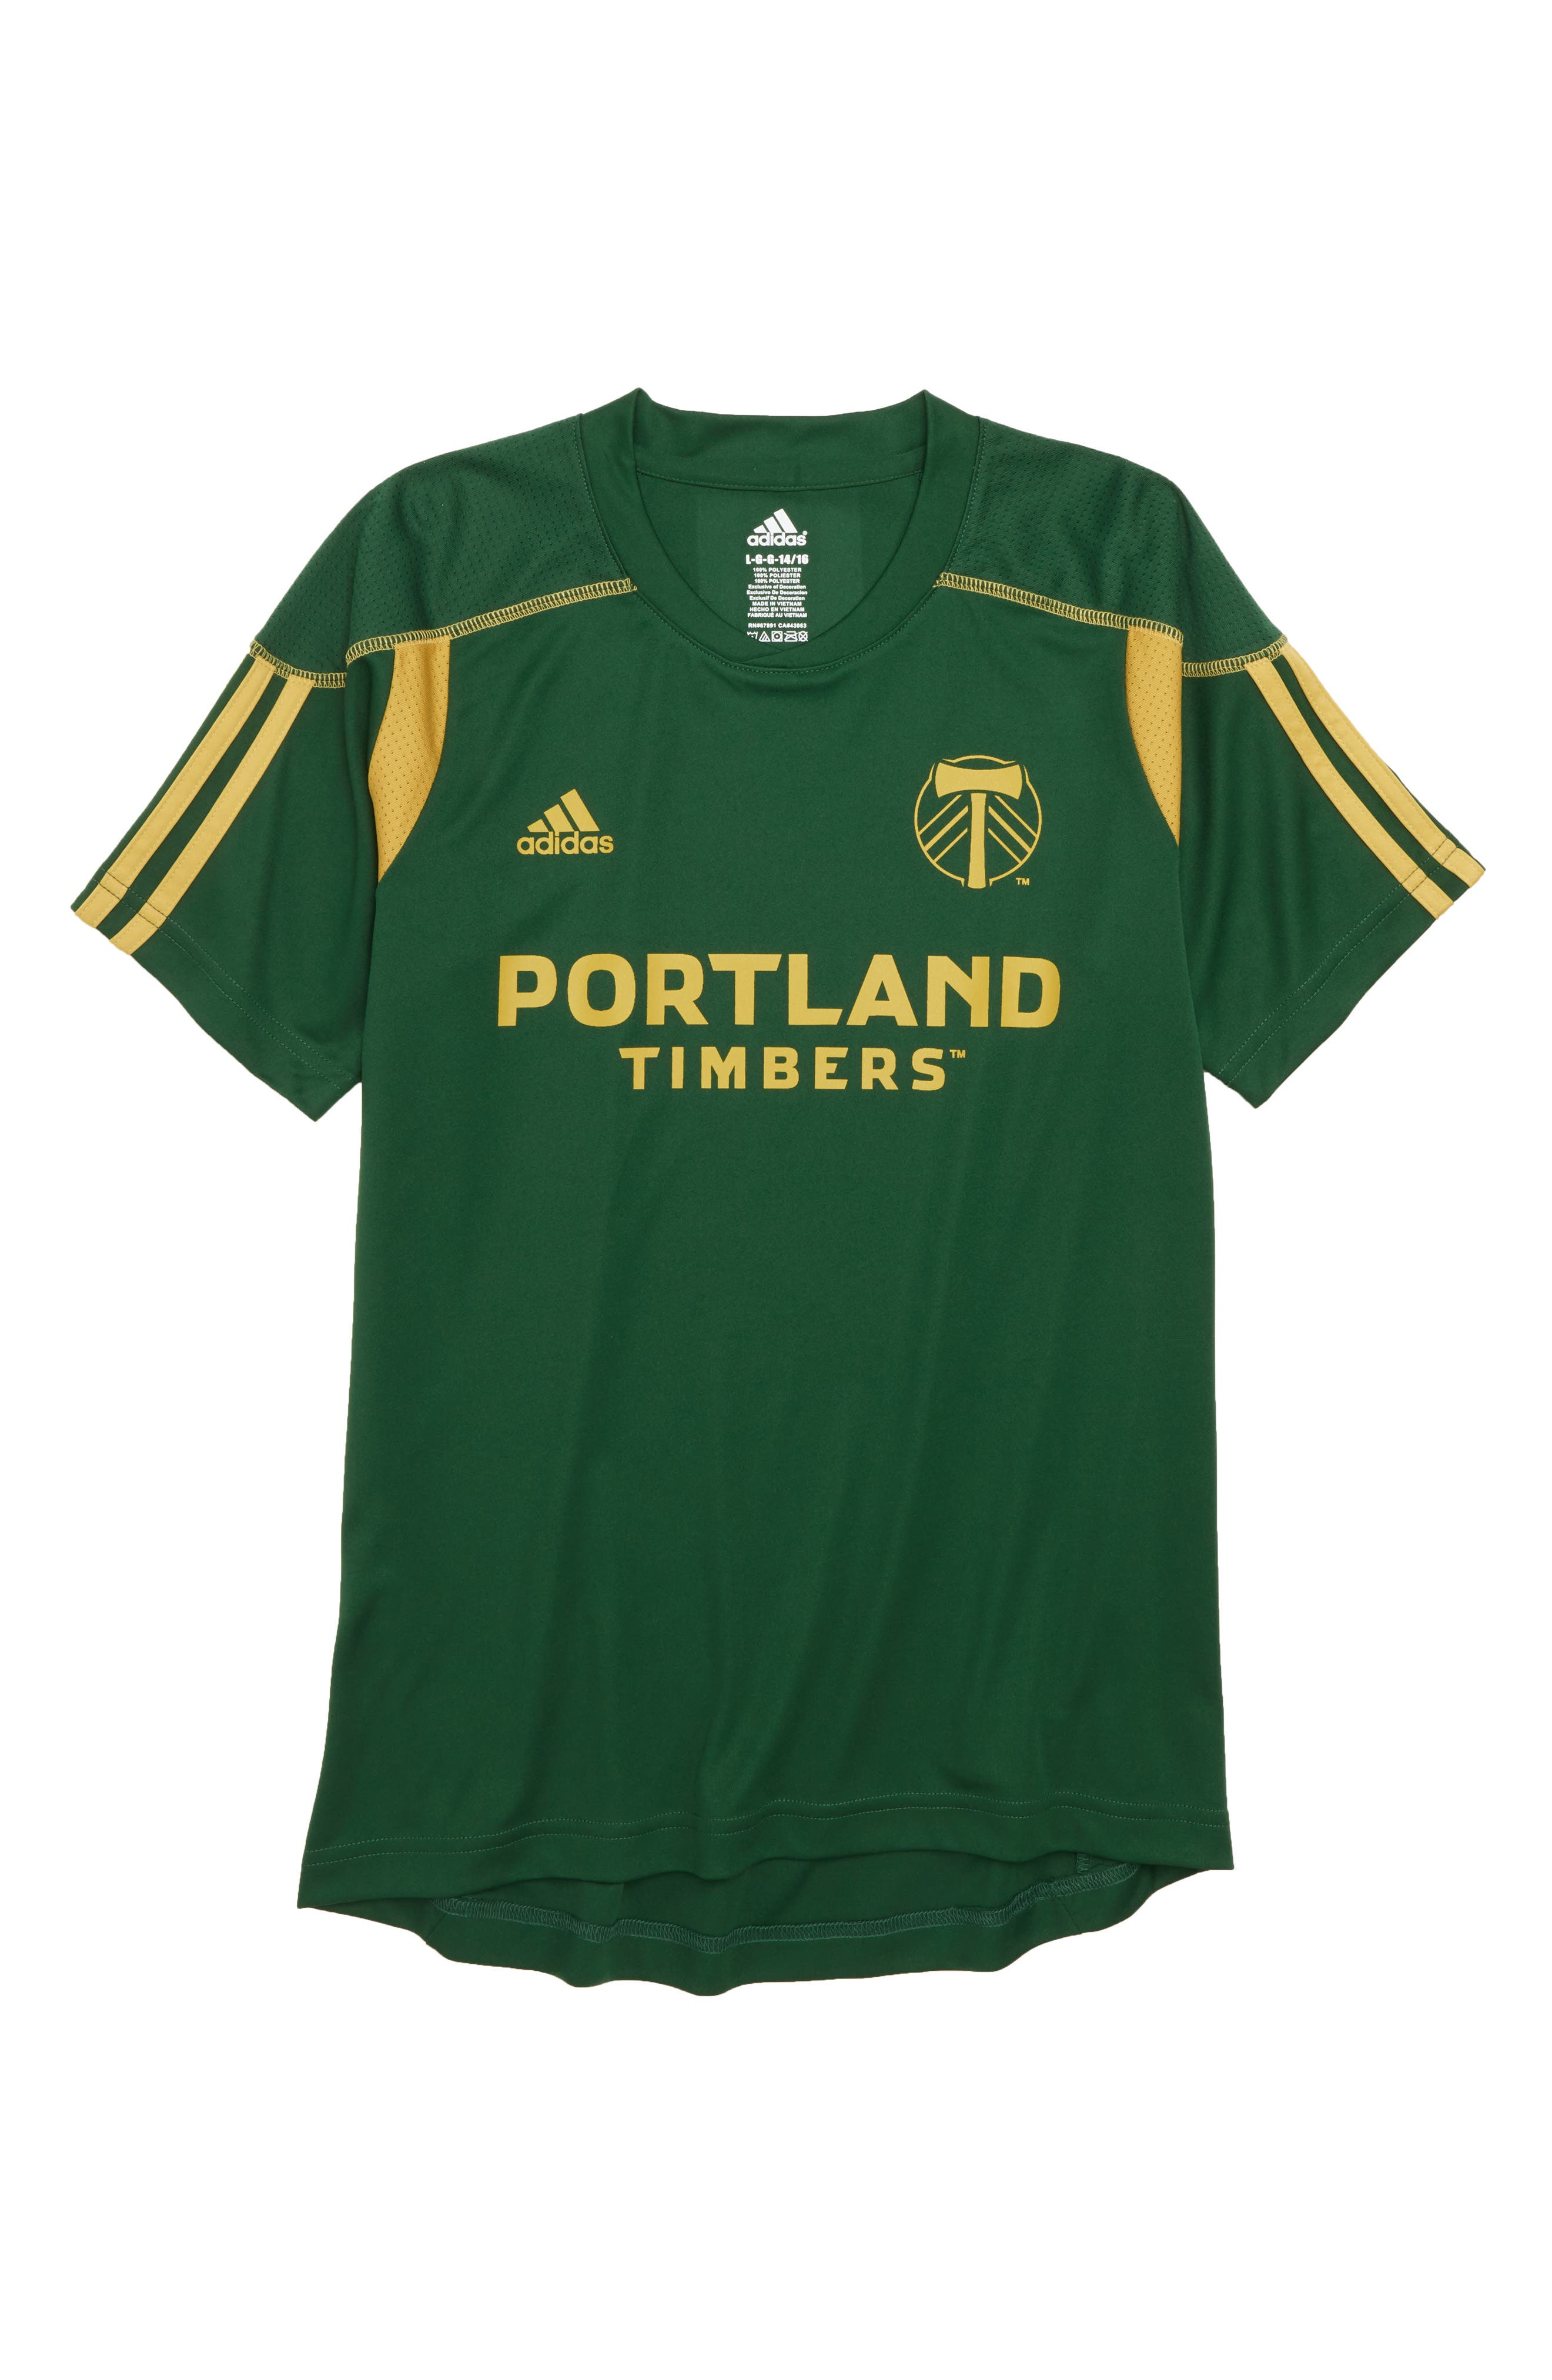 MLS Portland Timbers Primary Logo Graphic T-Shirt,                             Main thumbnail 1, color,                             300